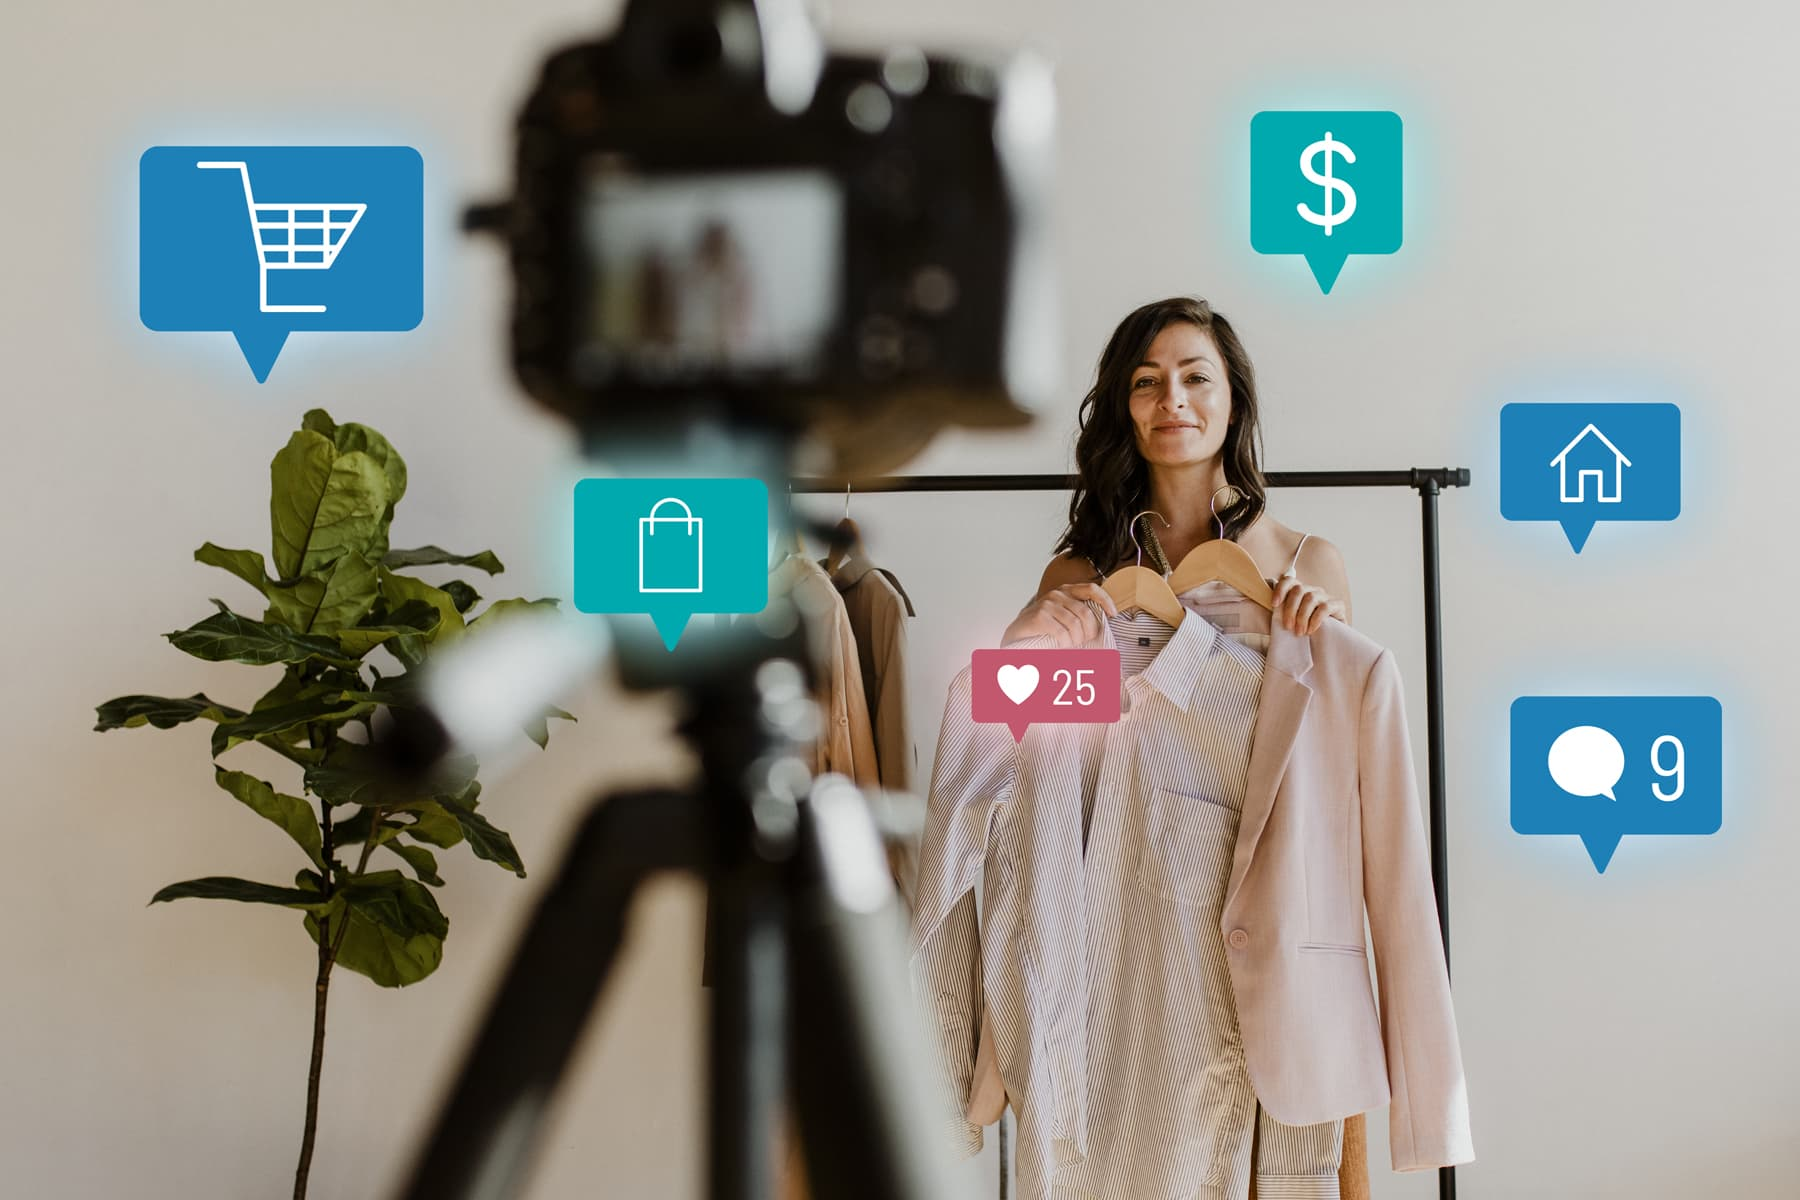 A young woman showcases her clothing products and gains sales, likes, and comments during the live streaming shopping campaign.